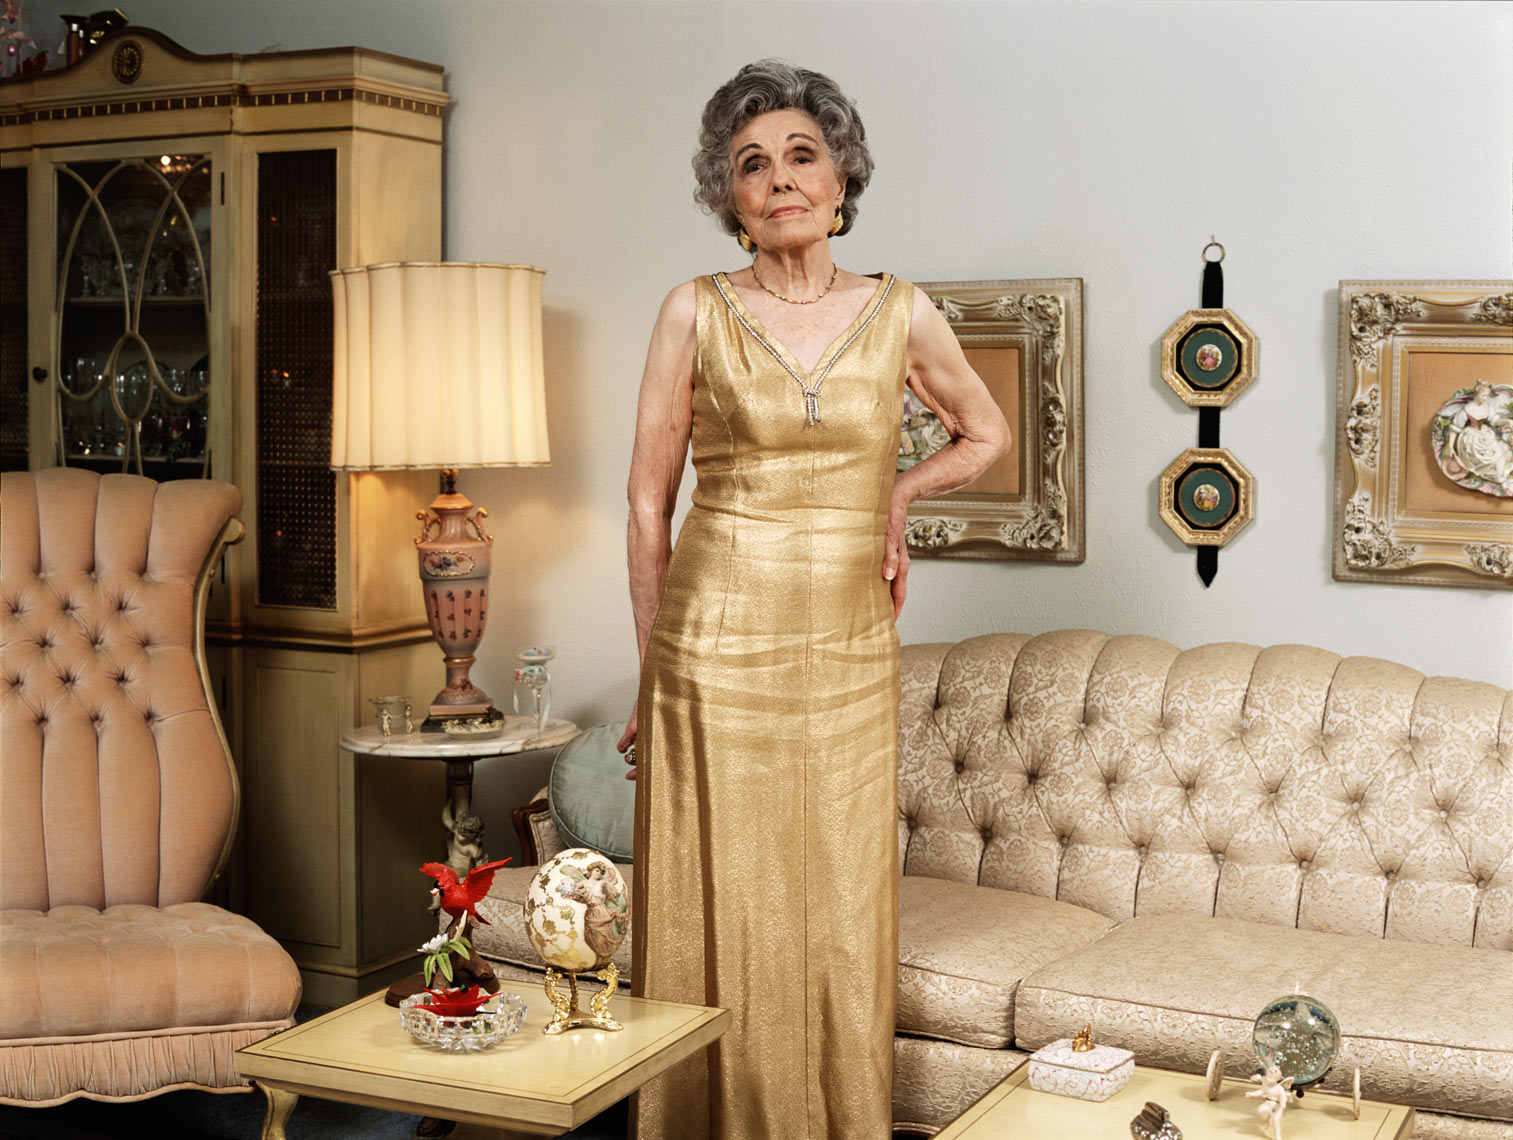 inez-in-gold-dress.jpg